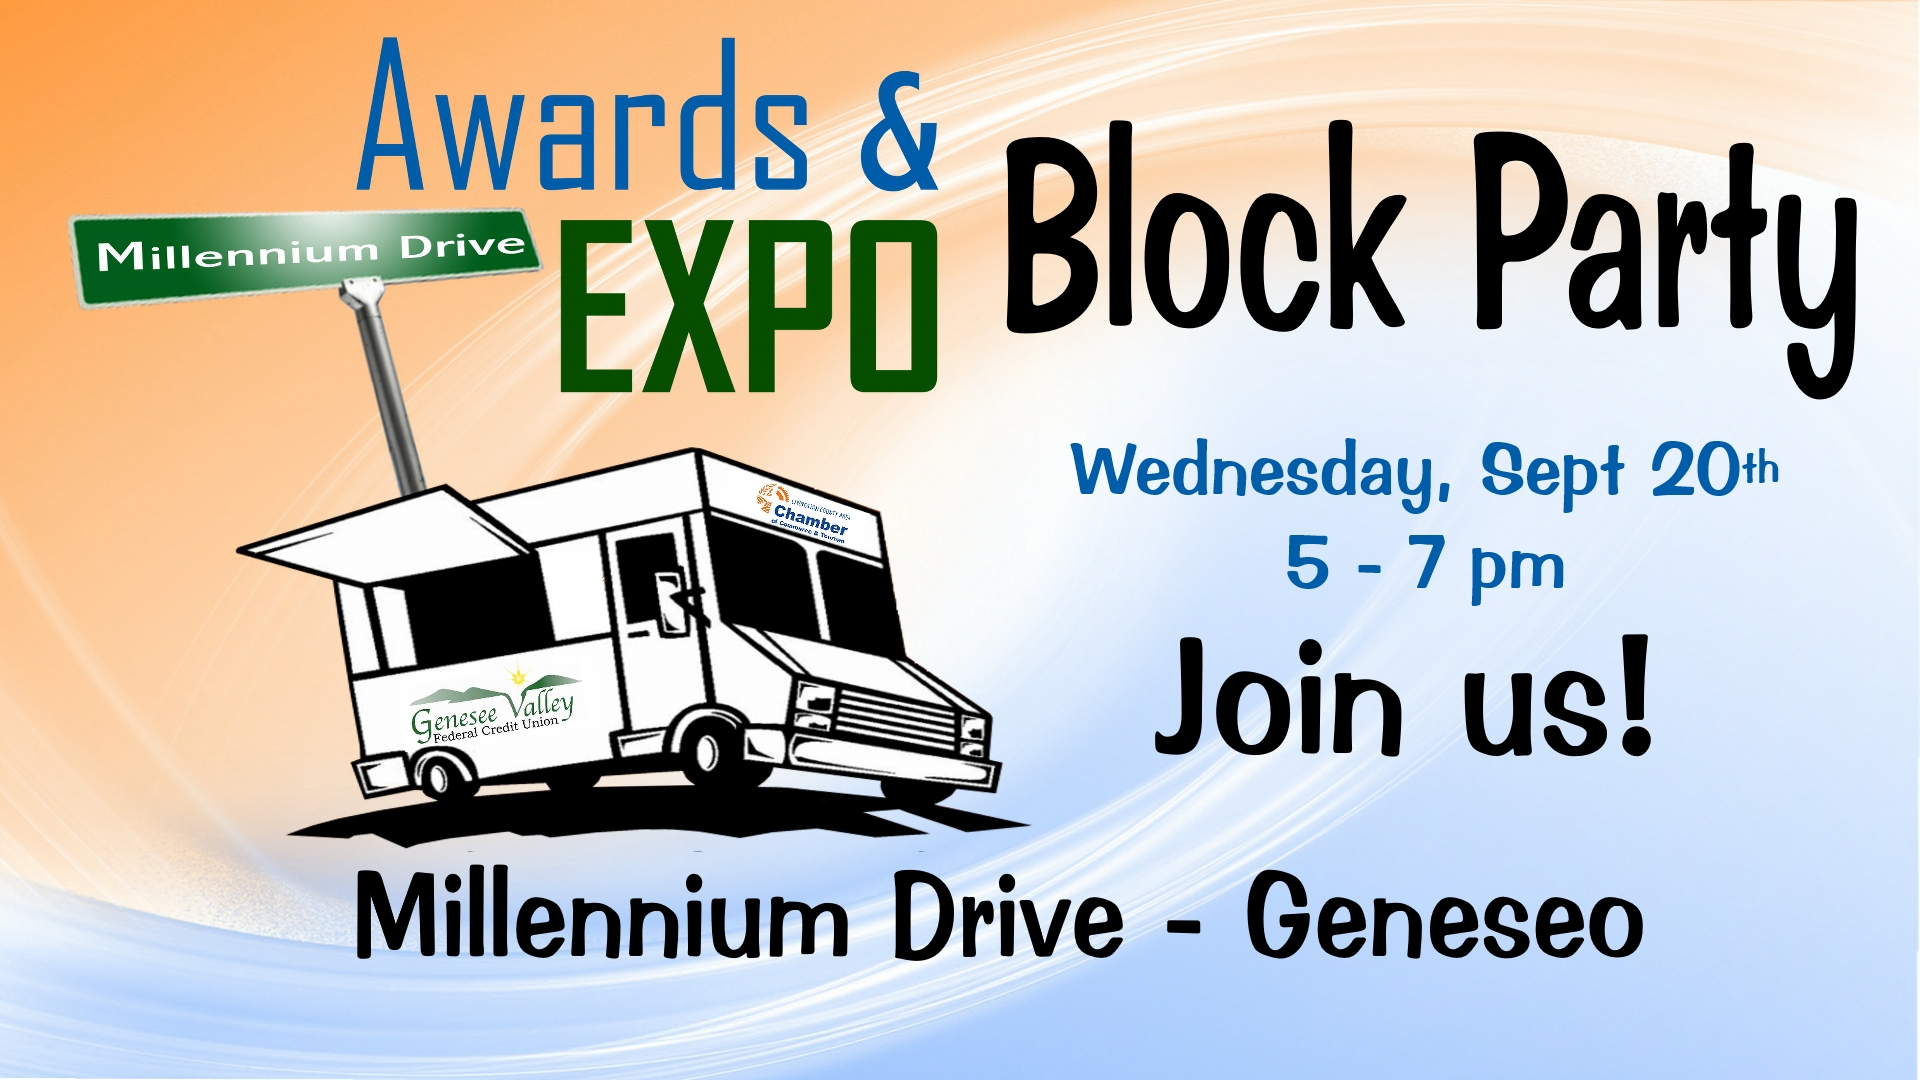 Livingston County Chamber Awards Expo & Block Party